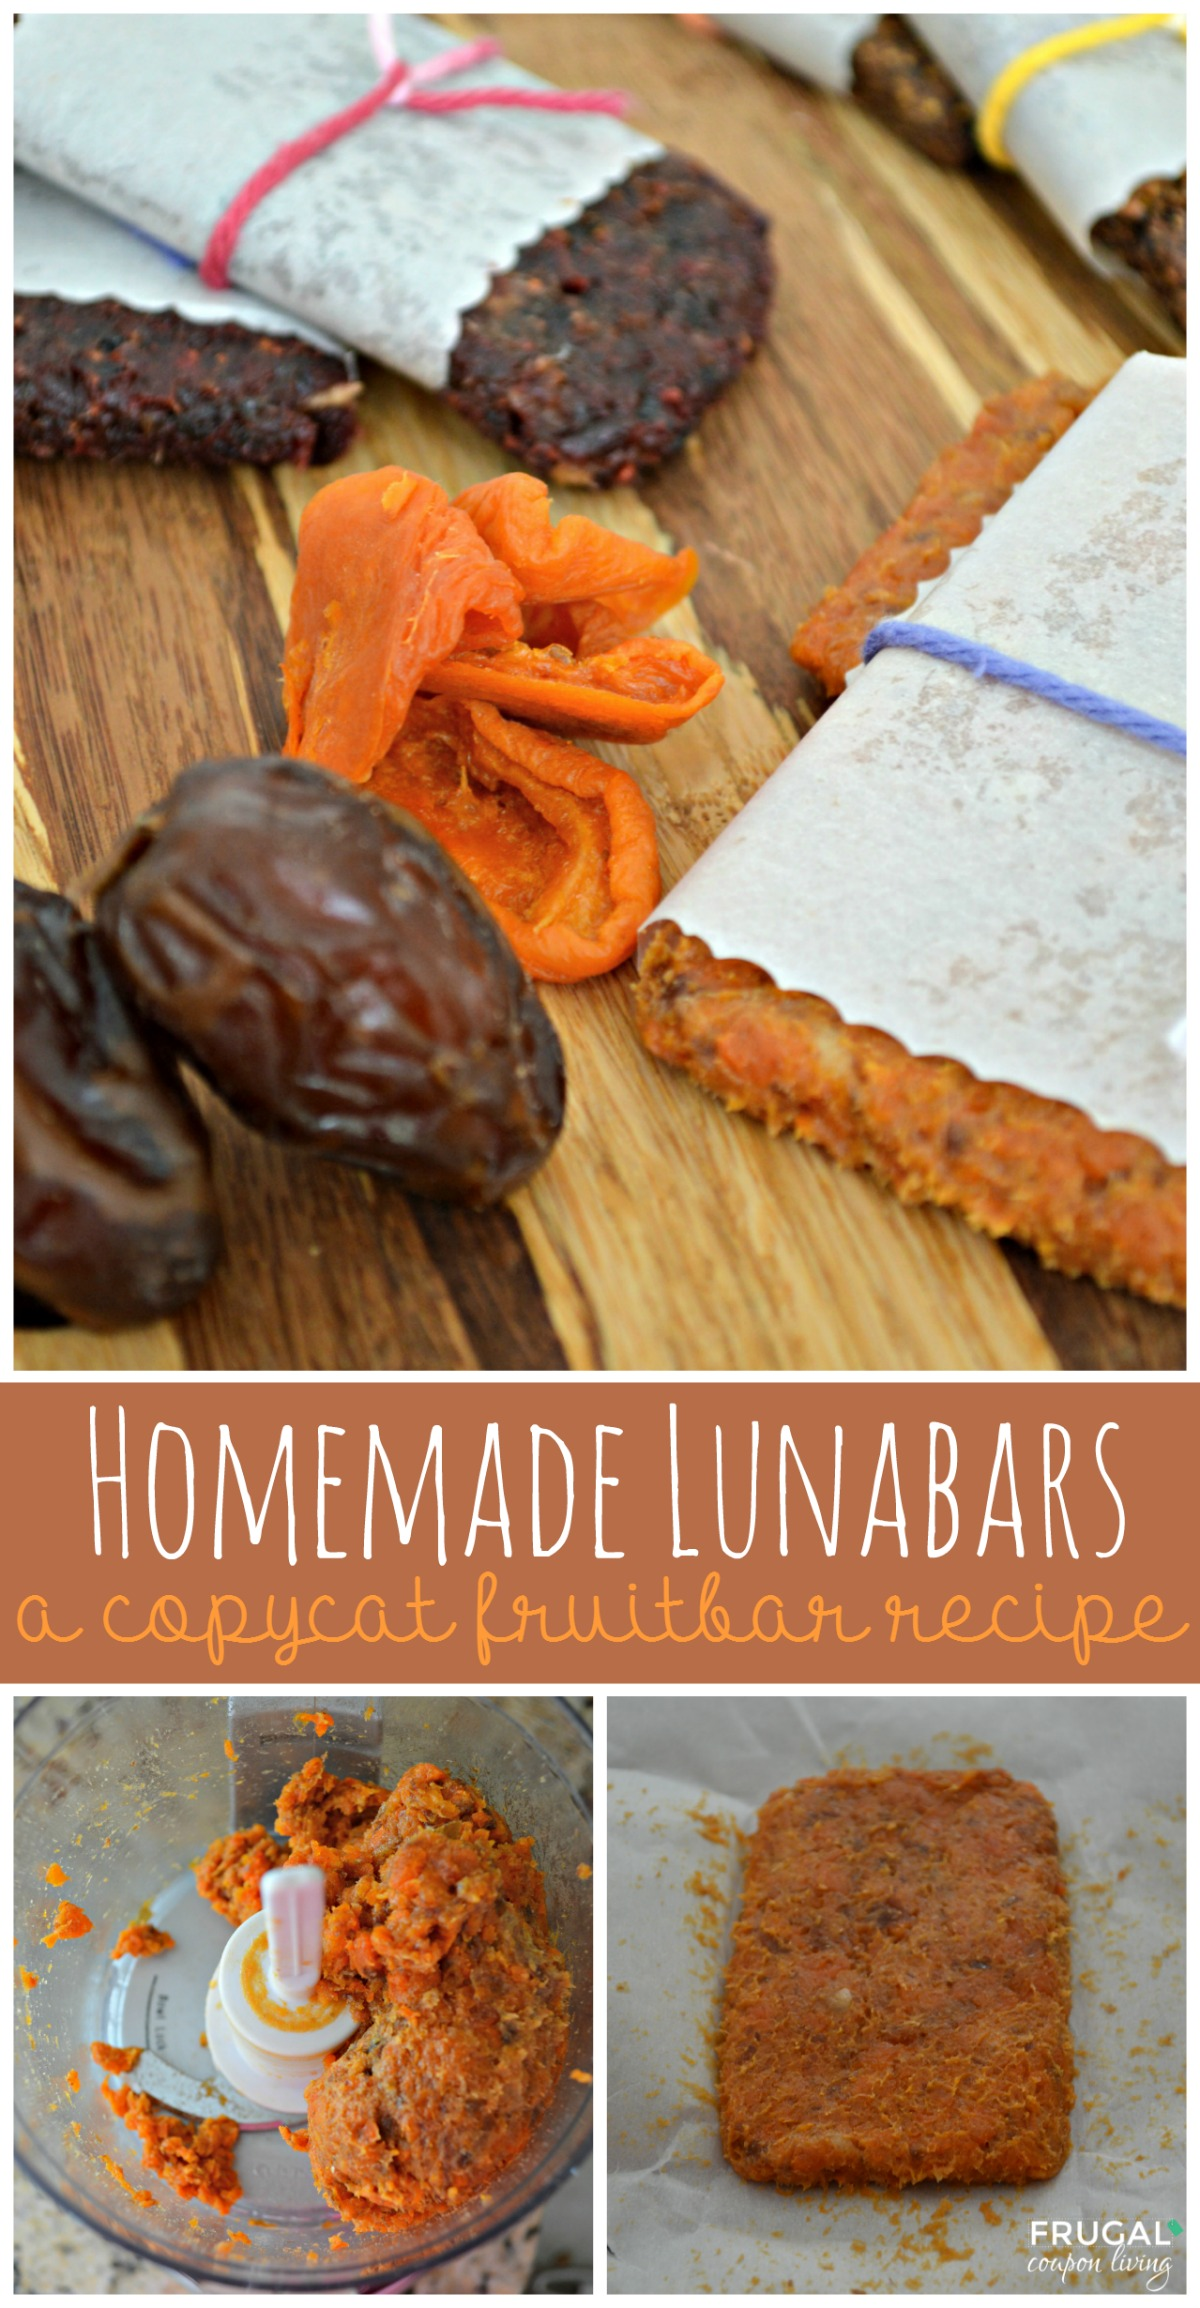 copycat-lunabars-recipe-frugal-coupon-living-collage